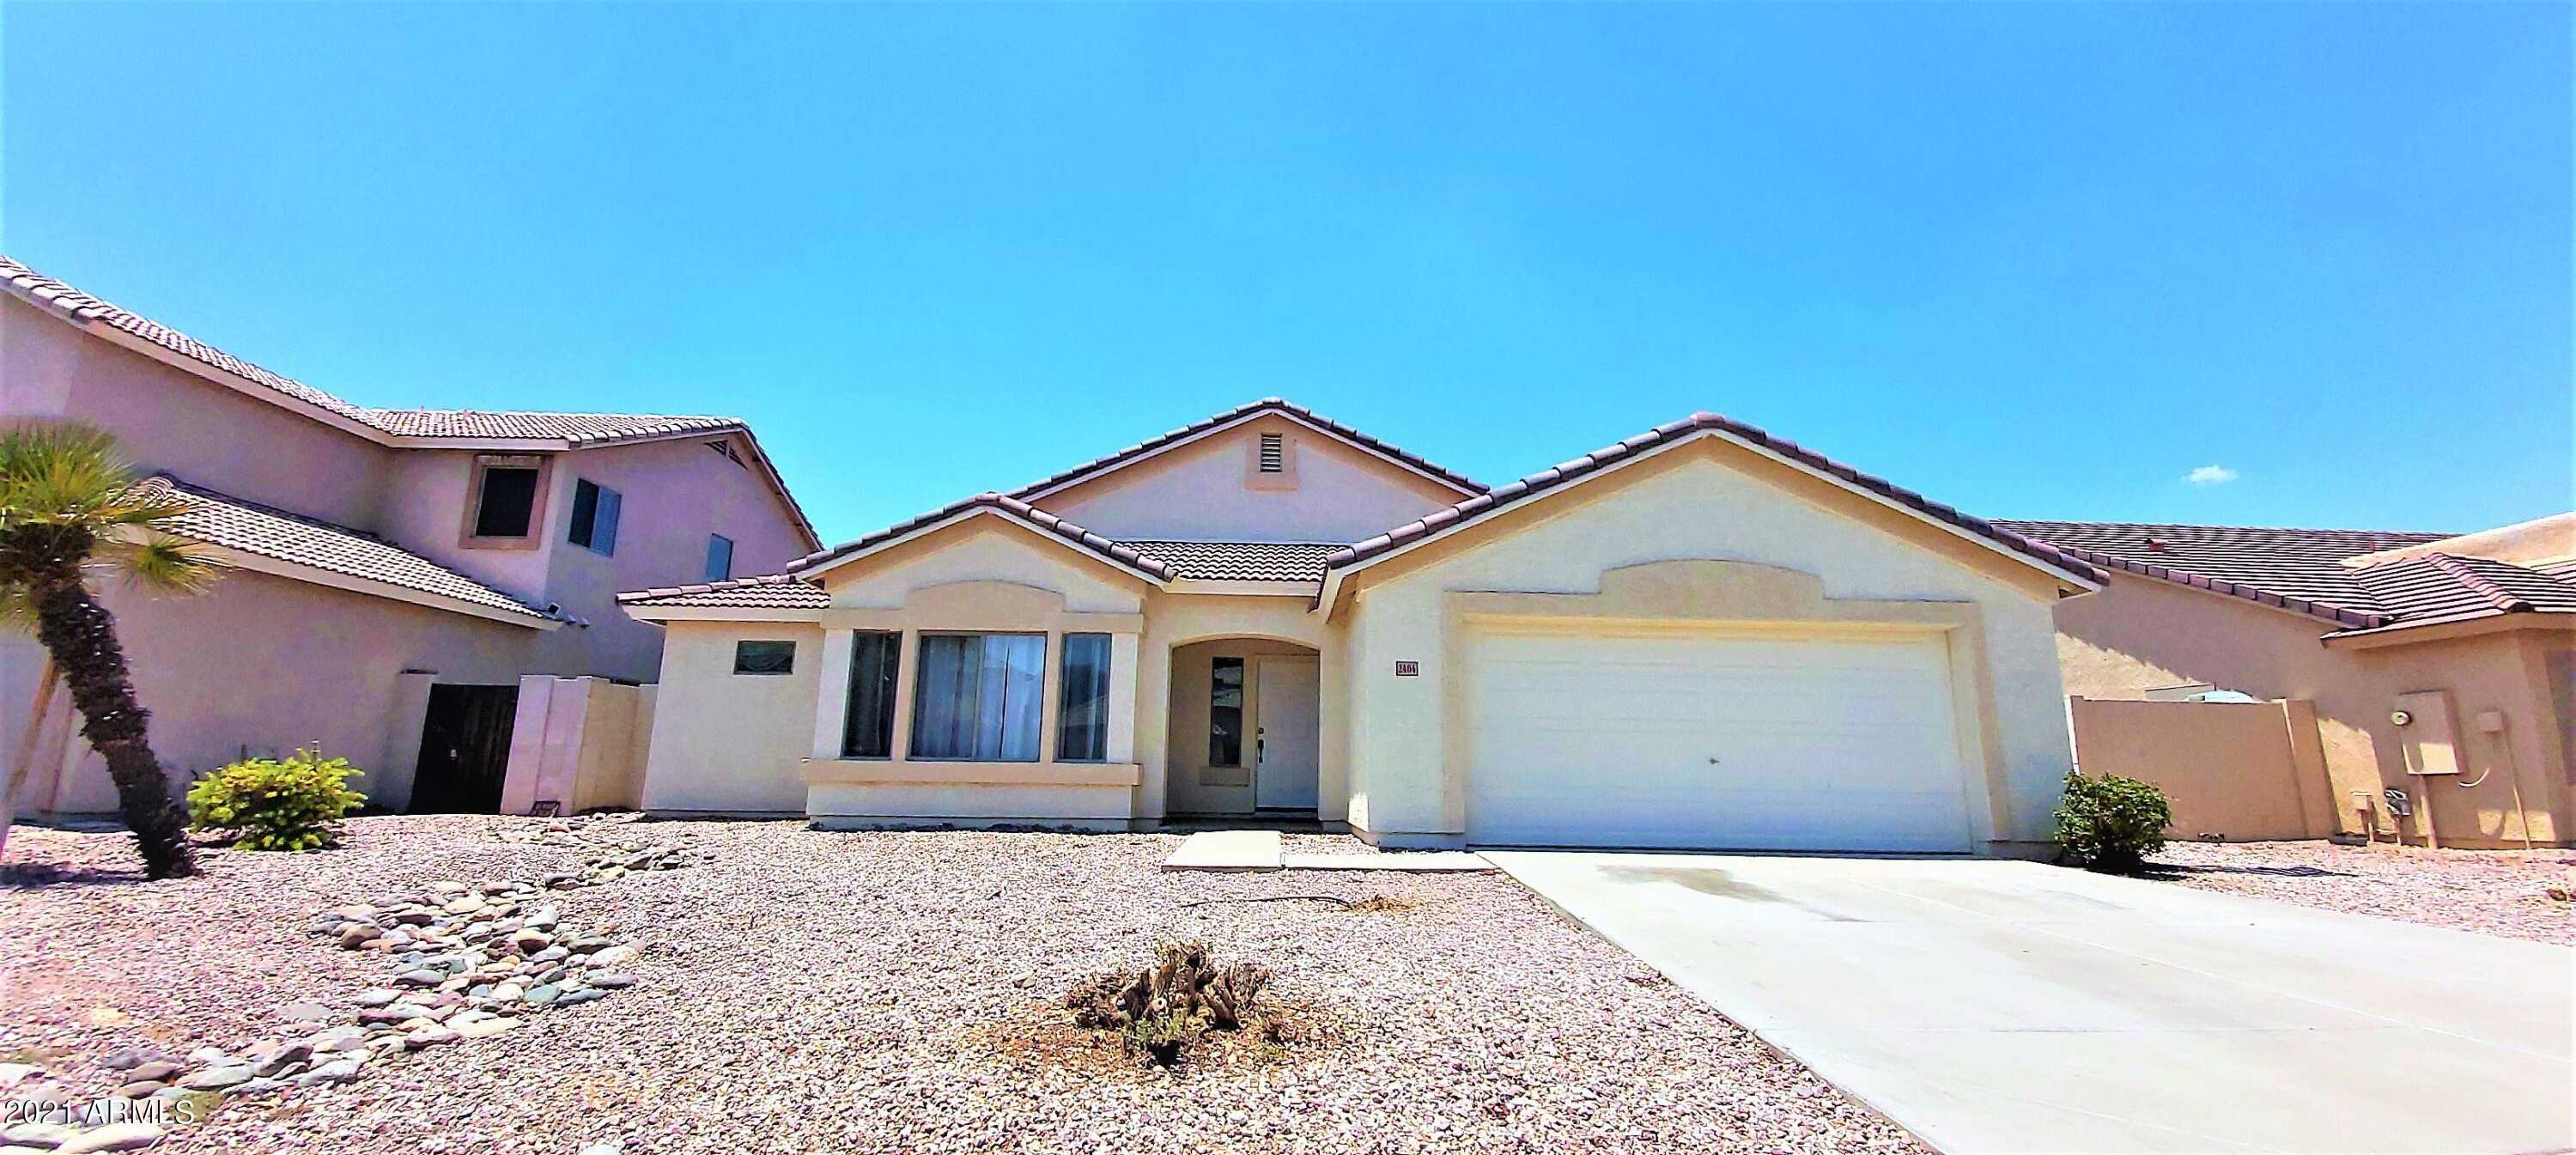 $388,000 - 3Br/2Ba - Home for Sale in Upland Park, Avondale